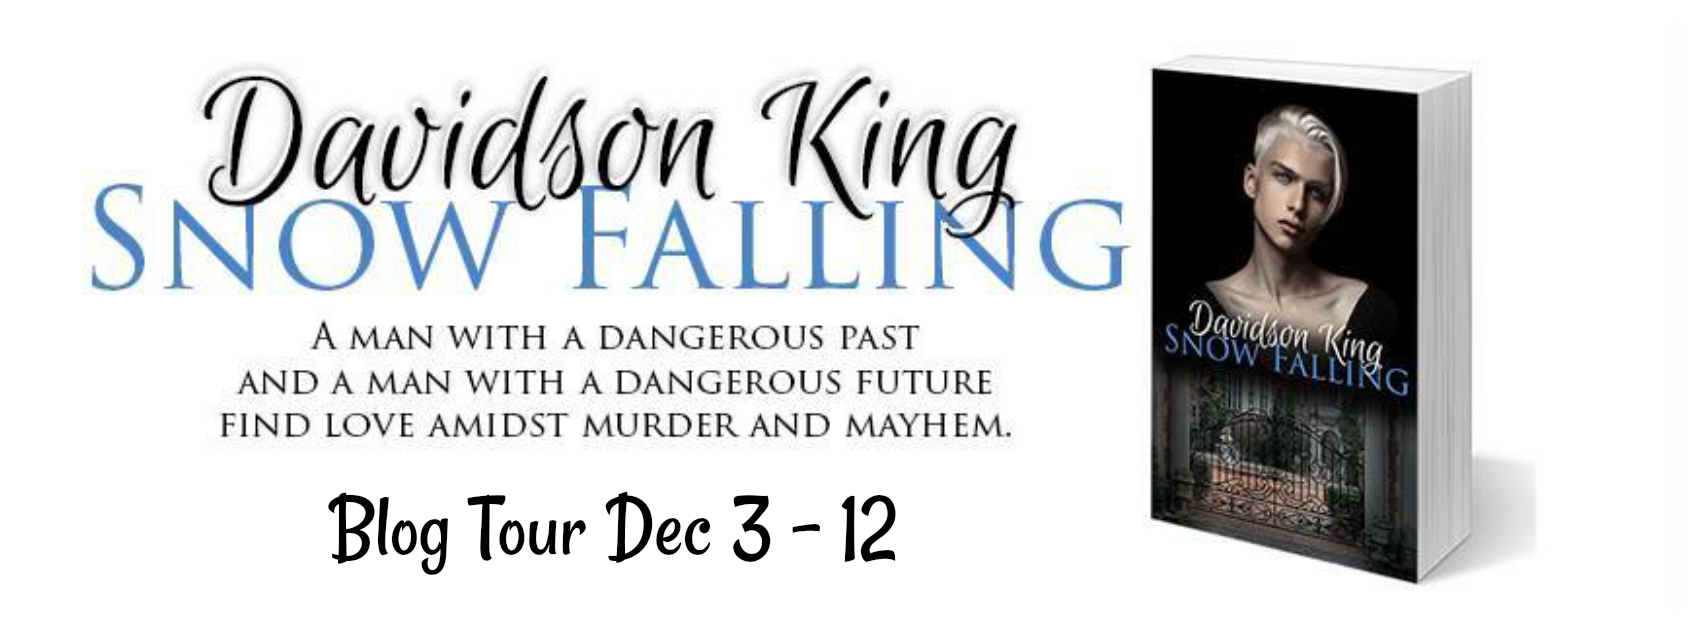 Get Snow Falling by Davidson King on Amazon & Kindle Unlimited